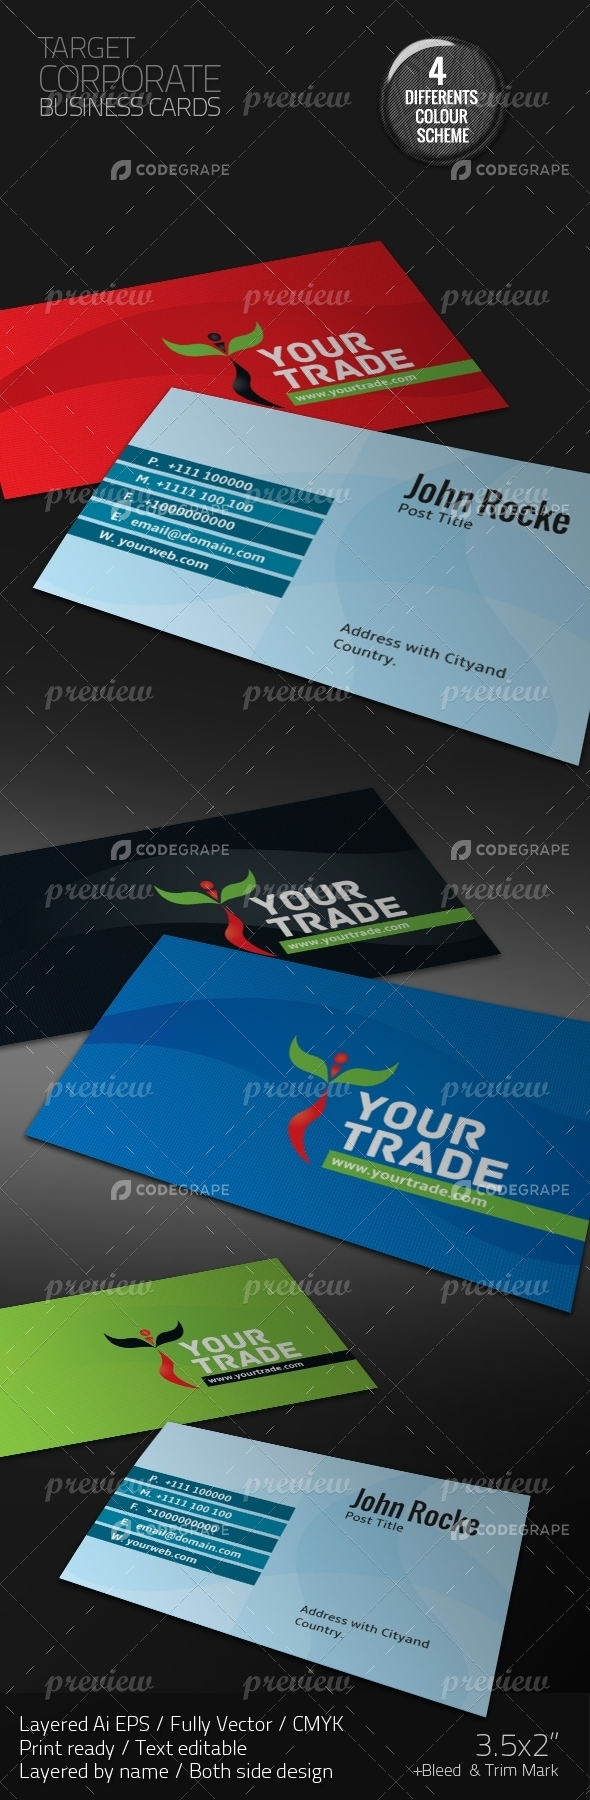 Your Trade Corporate Business Cards